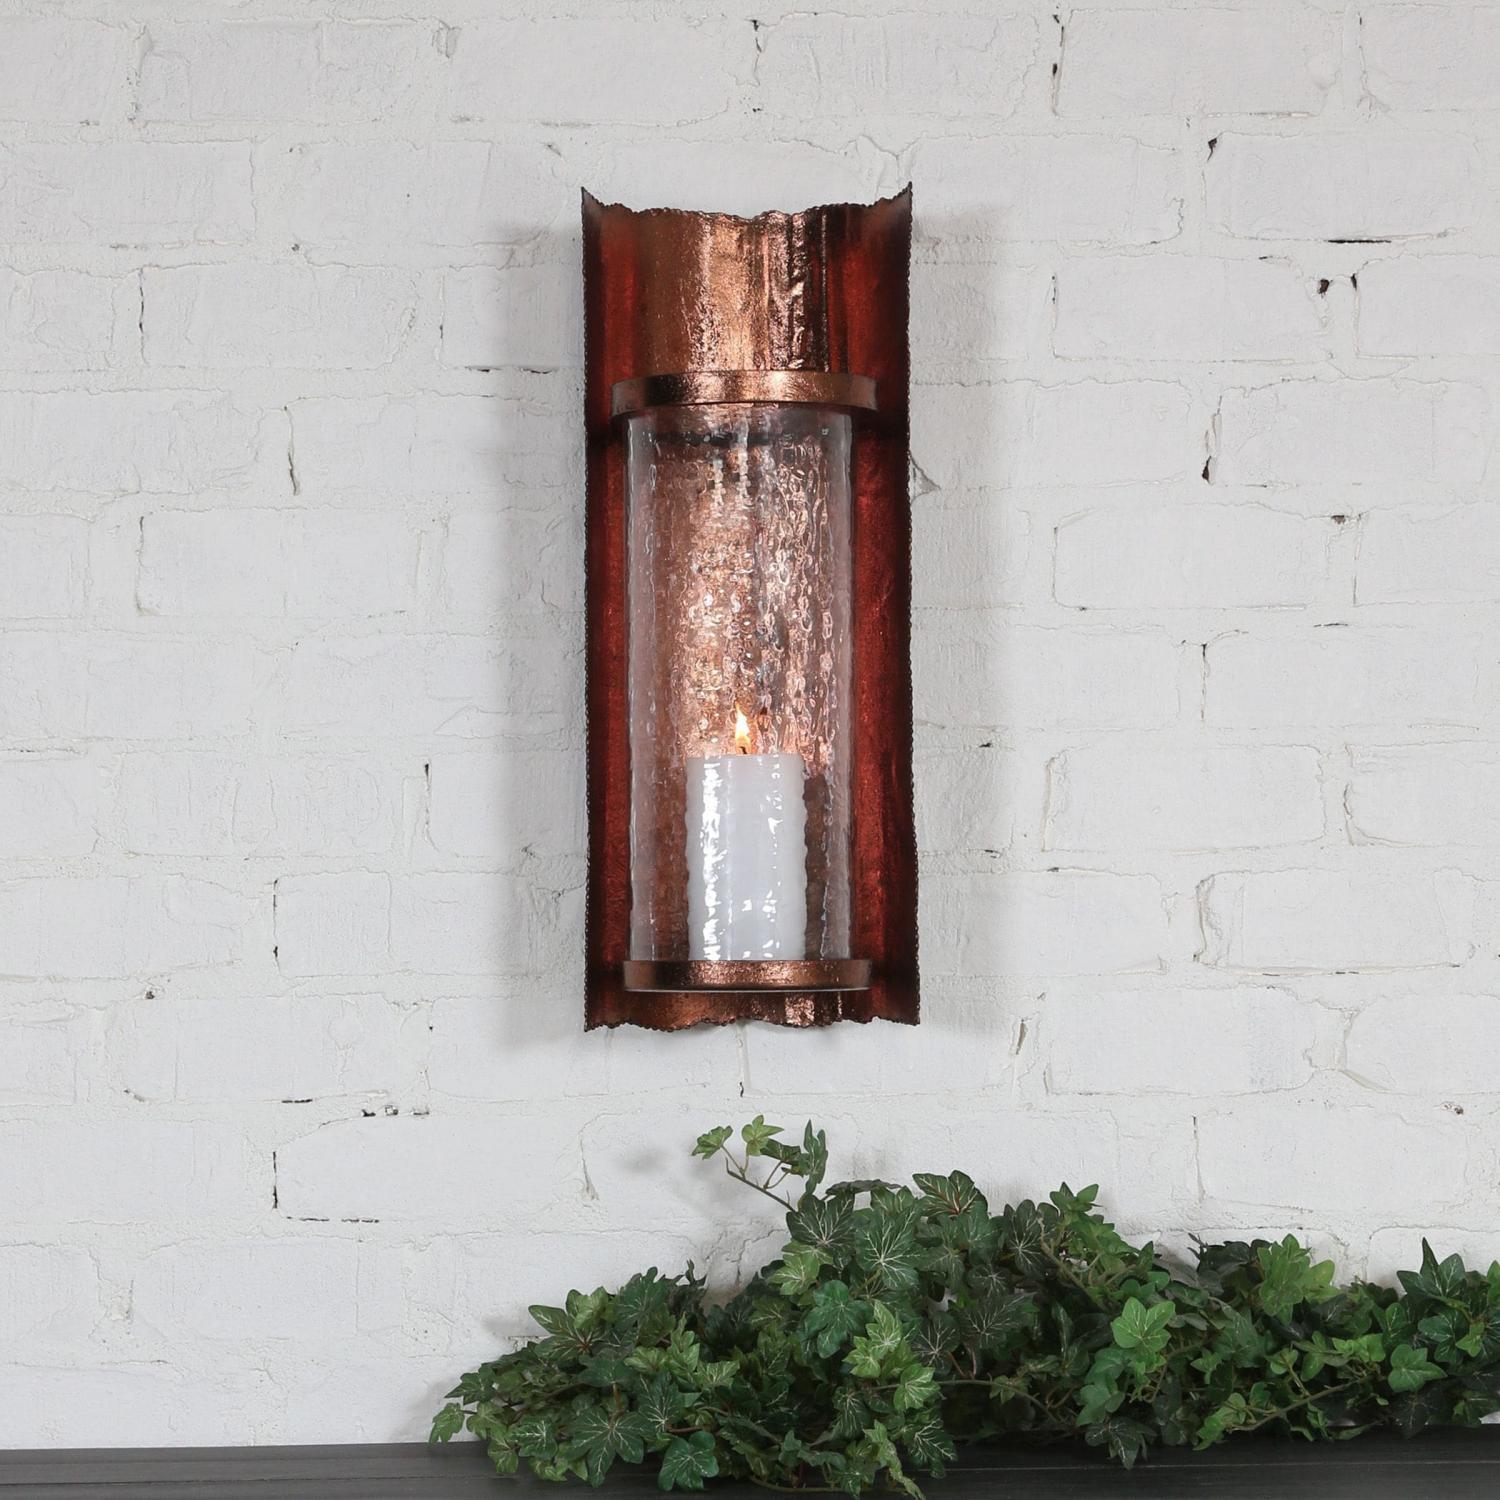 Details About Uttermost Antique Copper Sconce Hammered Glass Shade Candle Holder Wall Decor Intended For Three Glass Holder Wall Decor (View 7 of 30)